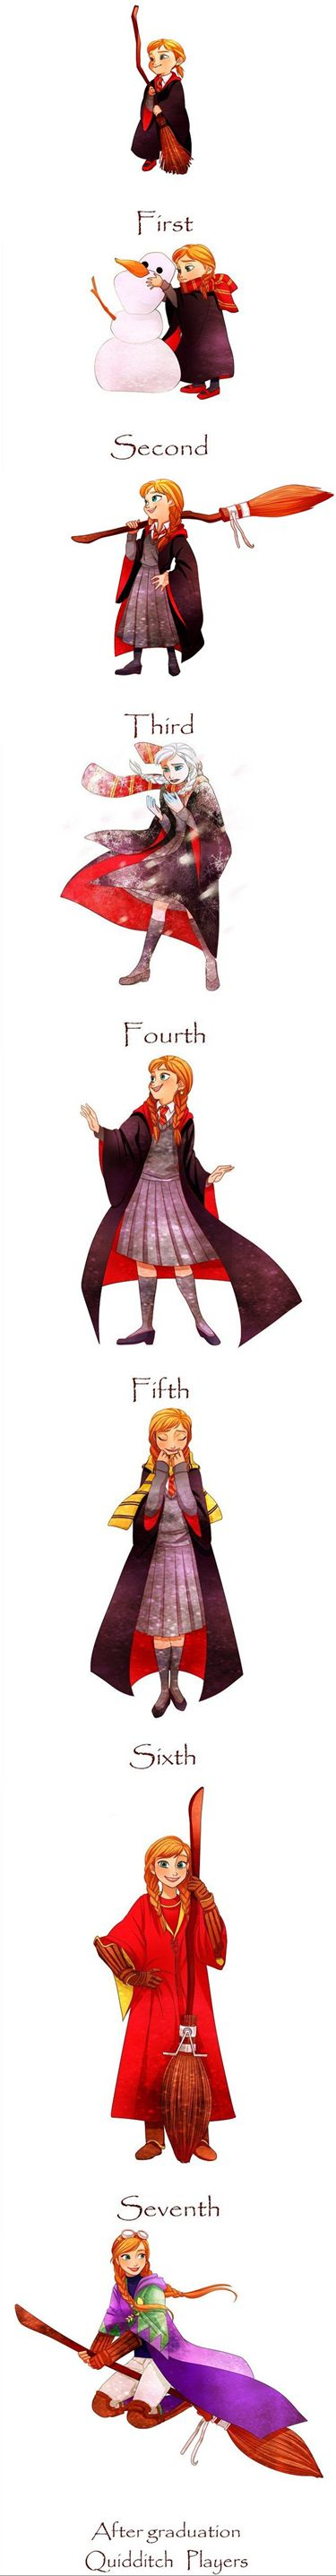 Anna at Hogwarts... I think she would be a HUFFLEPUFF though.<<<<is that a hufflepuff scarf?? Because if it is its probably Kristoff's《nah she'd be in GRYFFINDOR